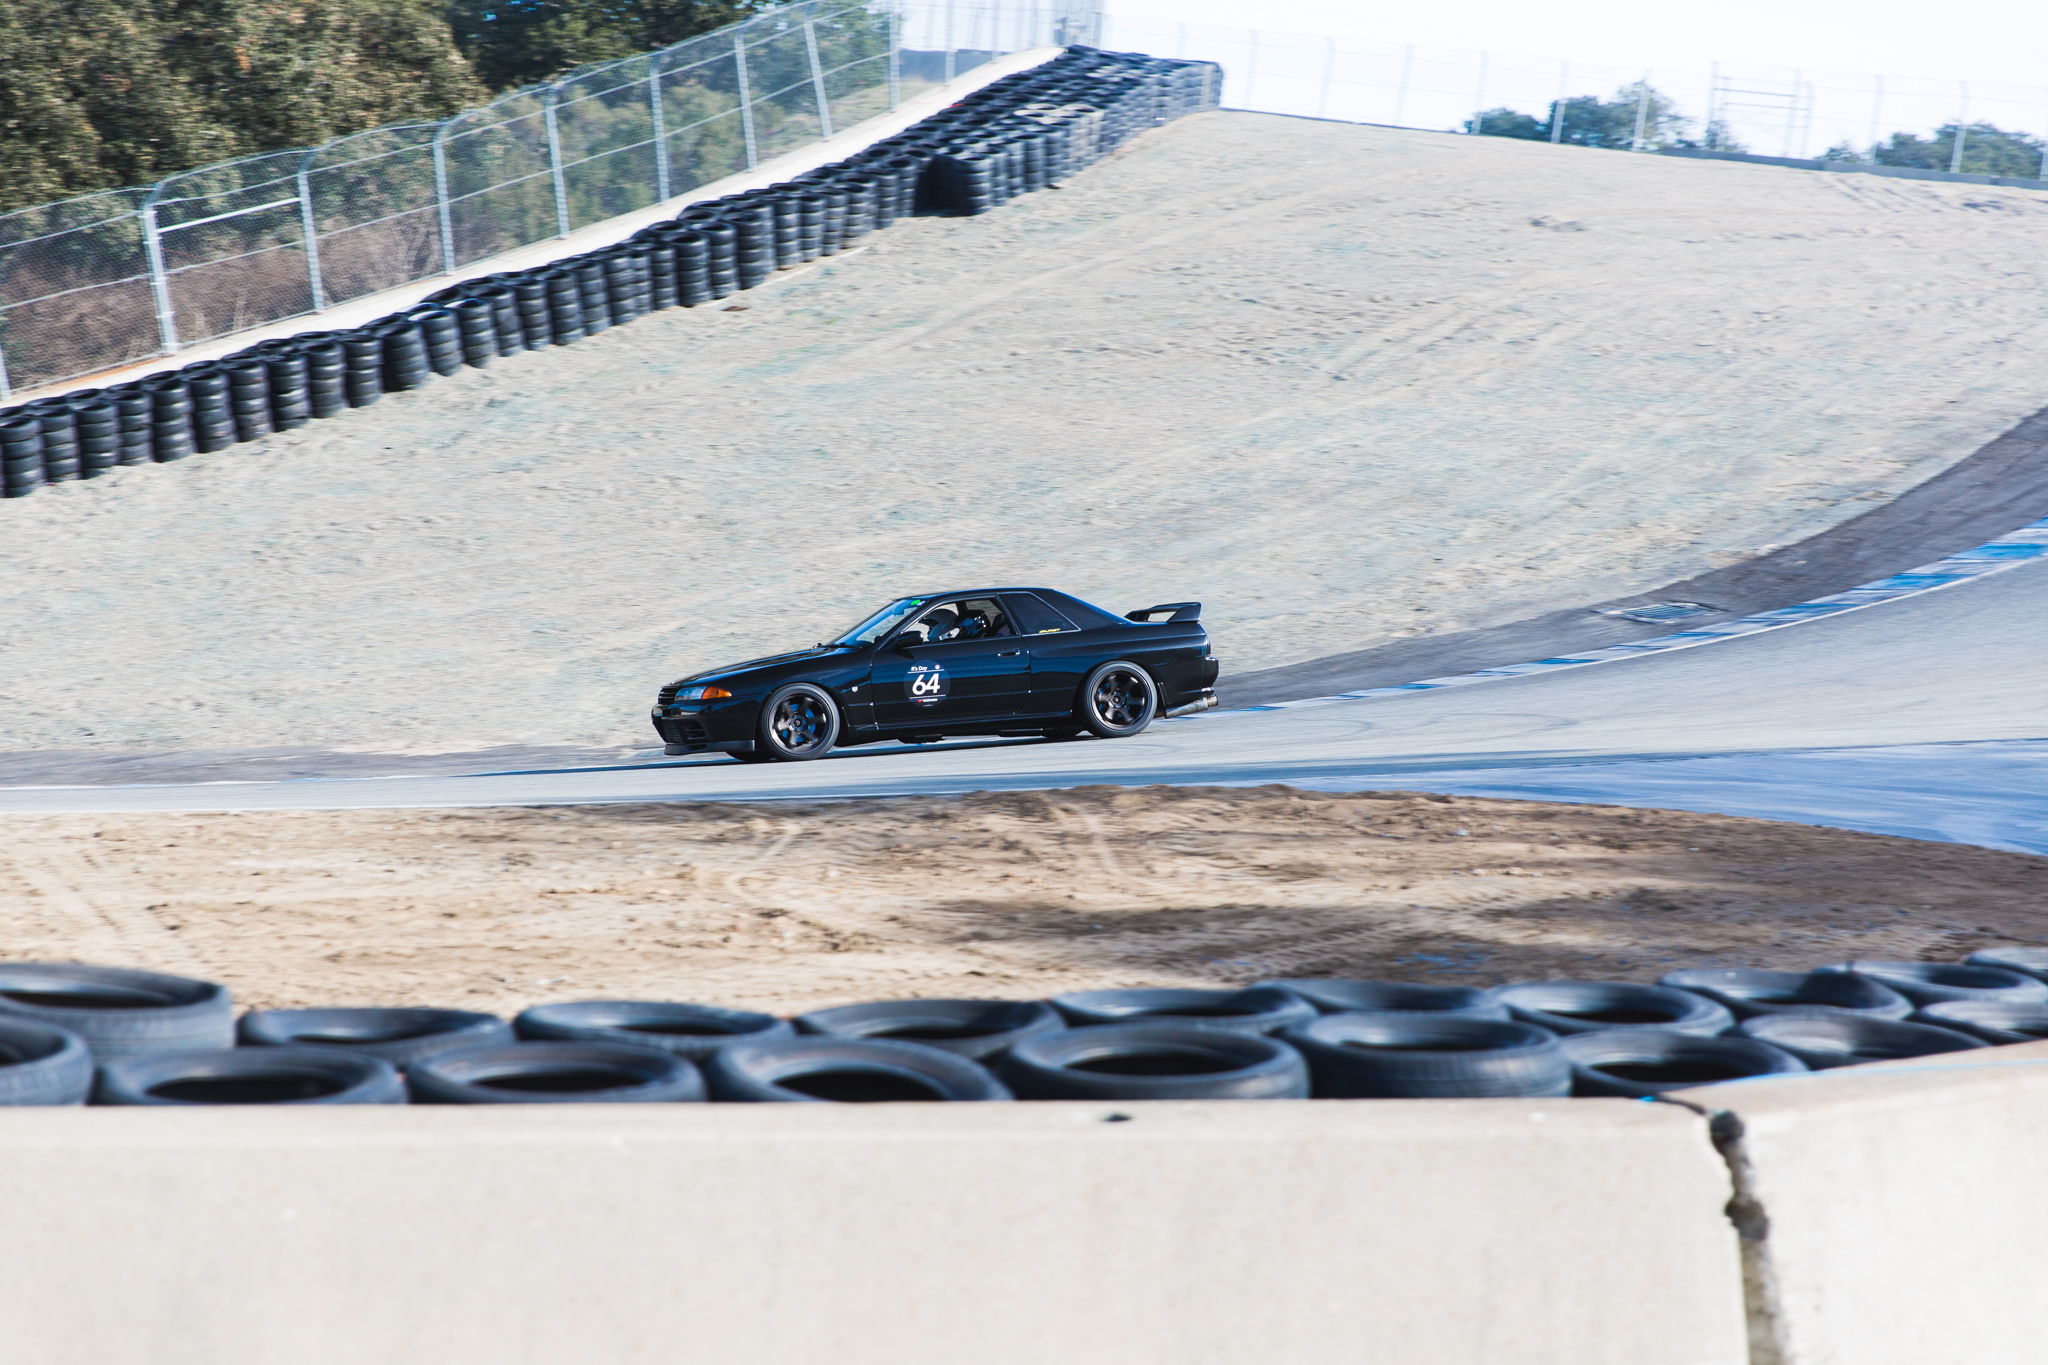 Stay_Driven_Rs_Day-46.jpg